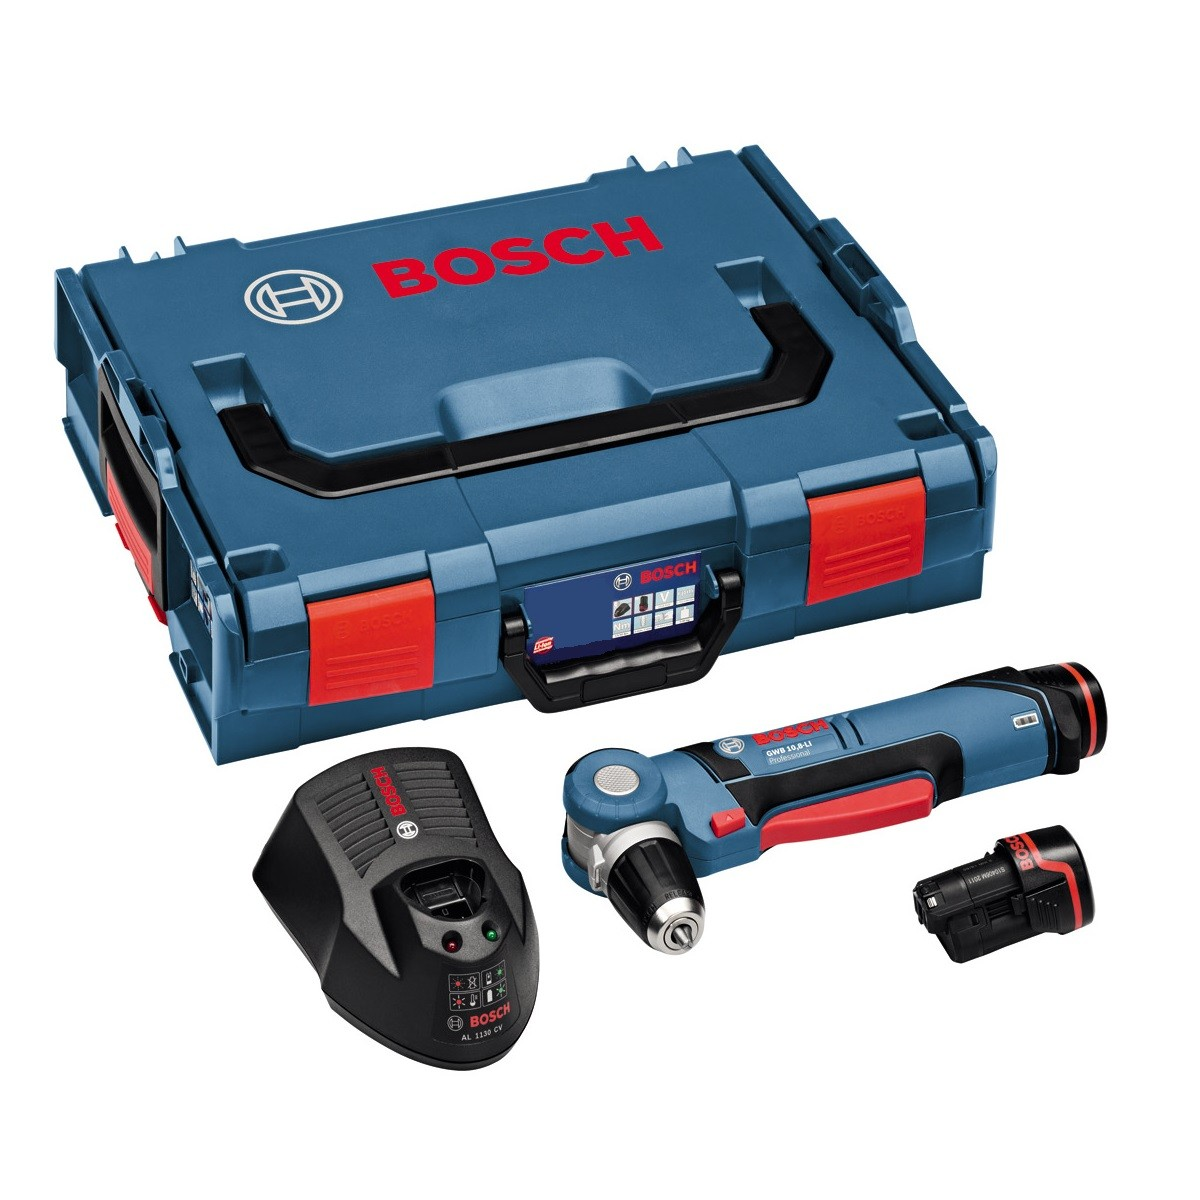 Bosch GWB 10.8-LI Angle Drill Driver Inc 2x 2.0Ah Batts in L-Boxx